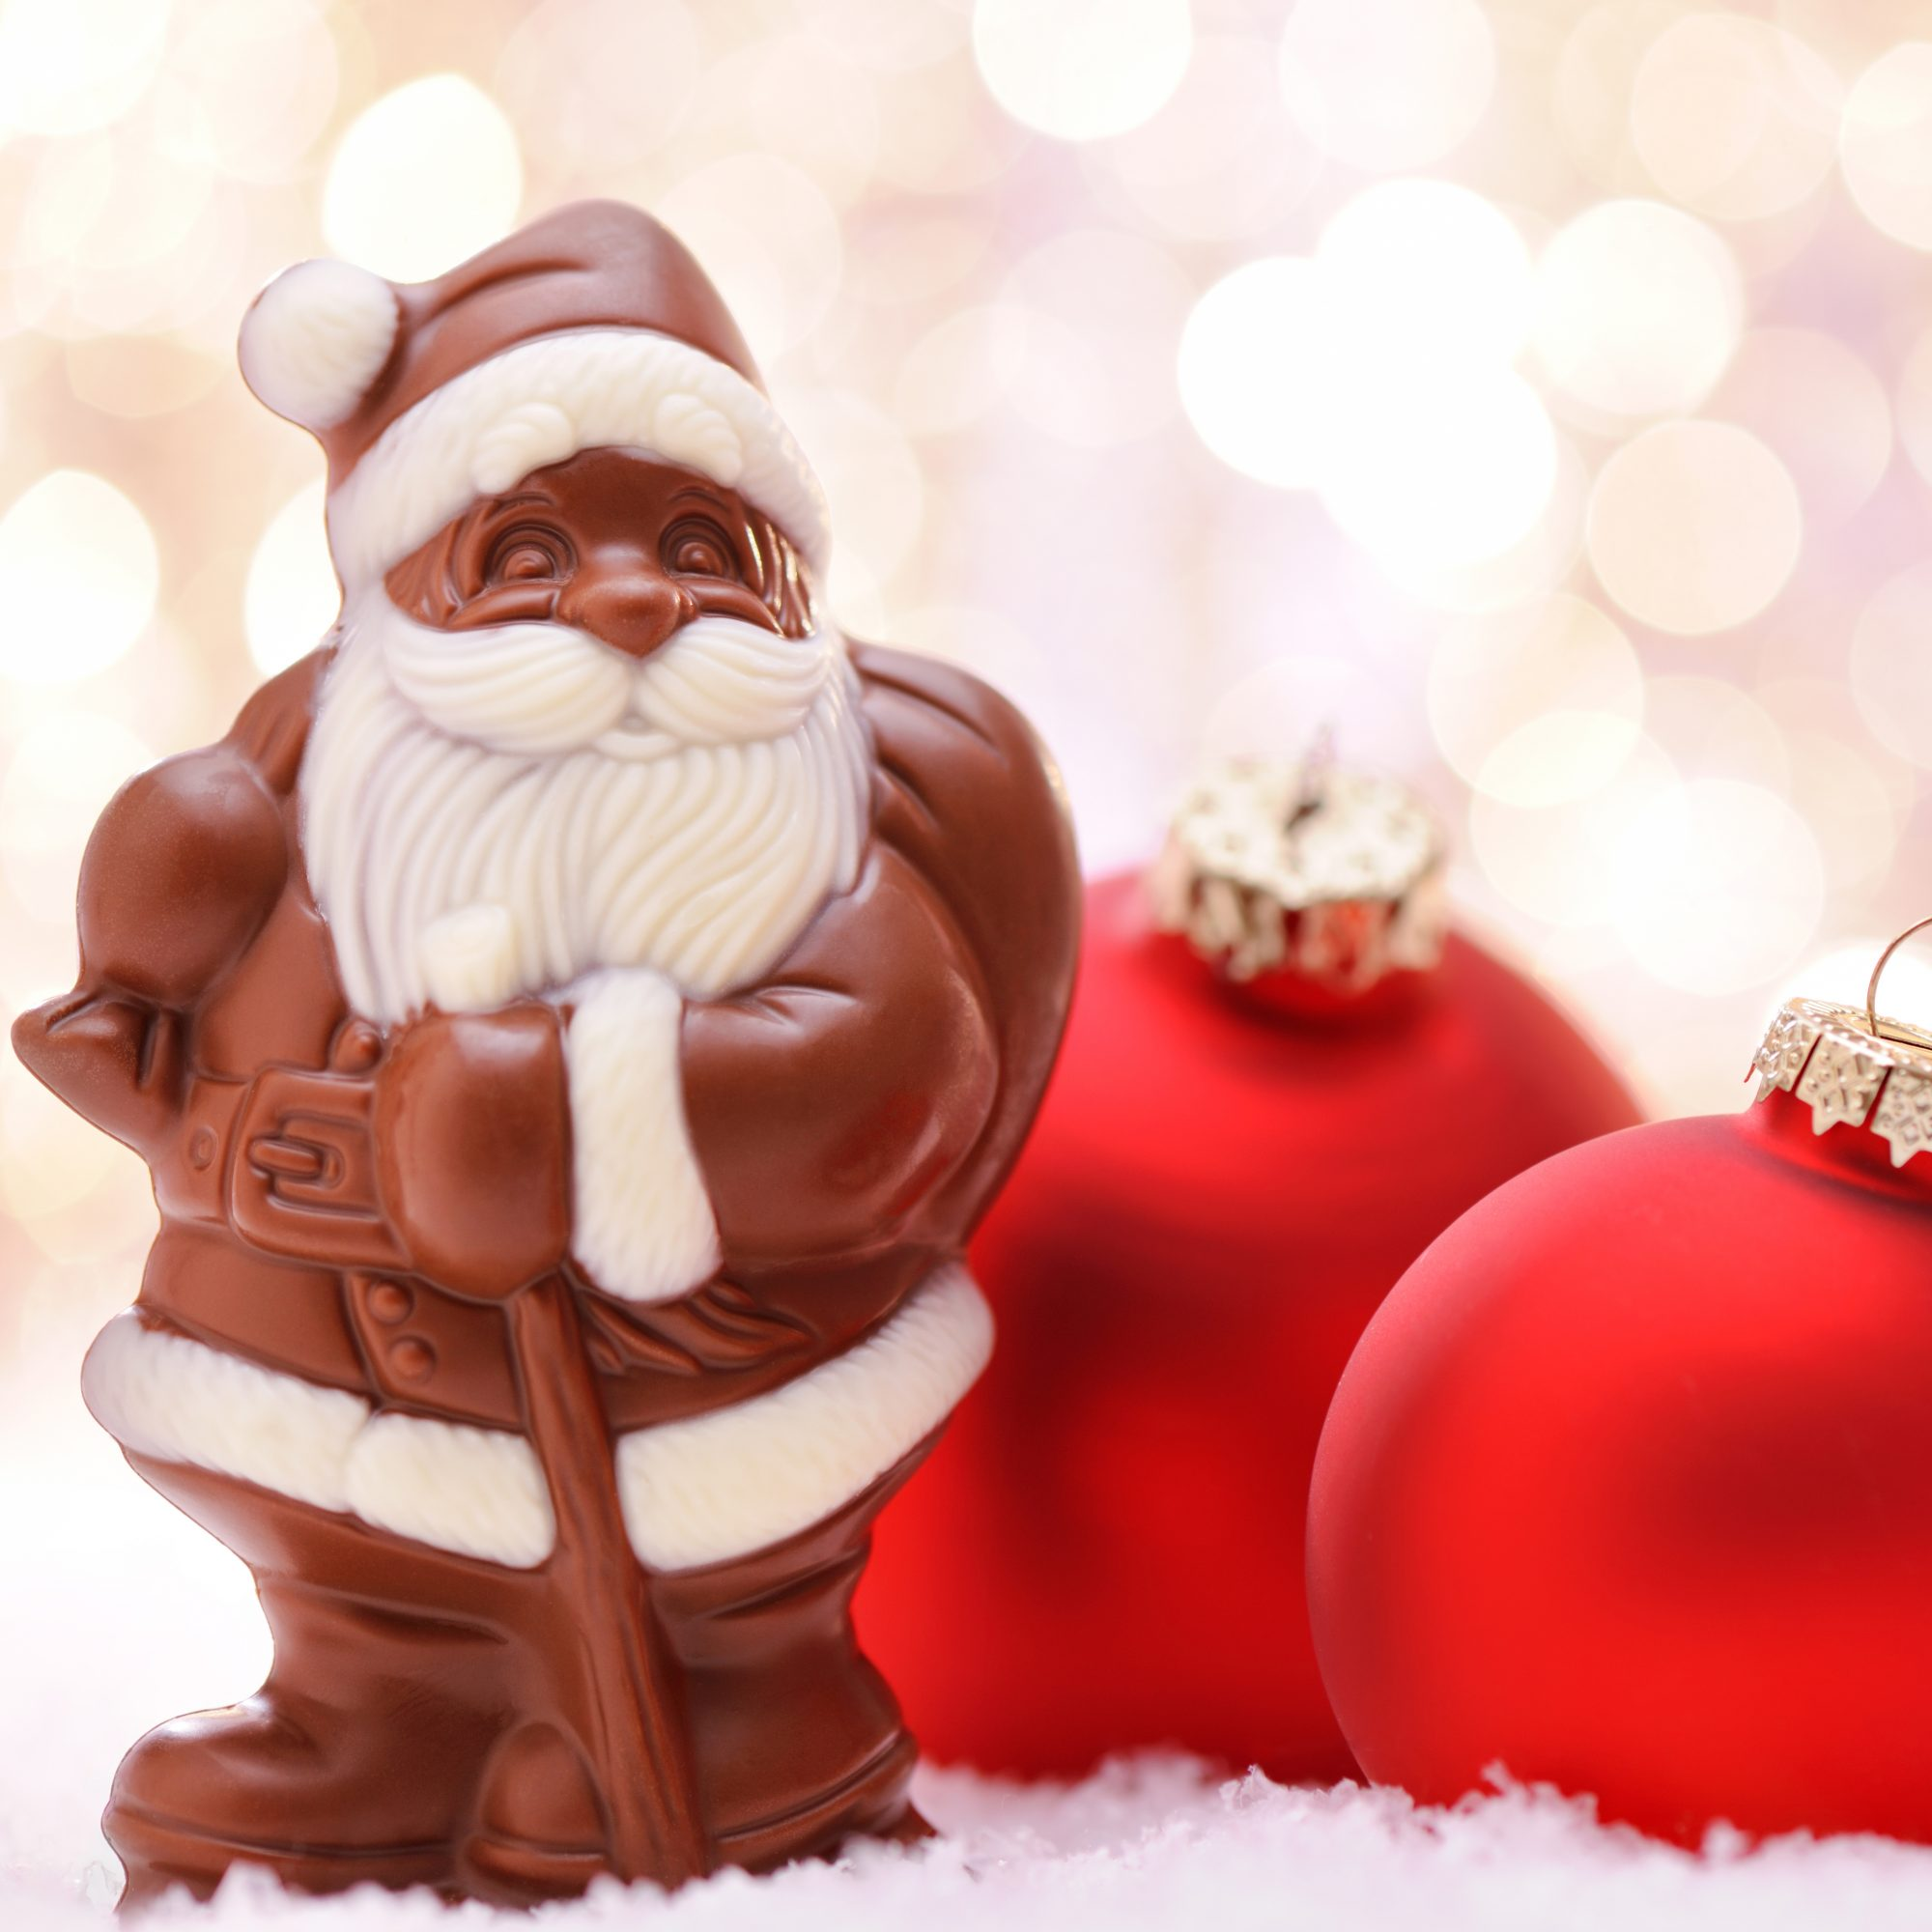 chocolate-santa-fwx